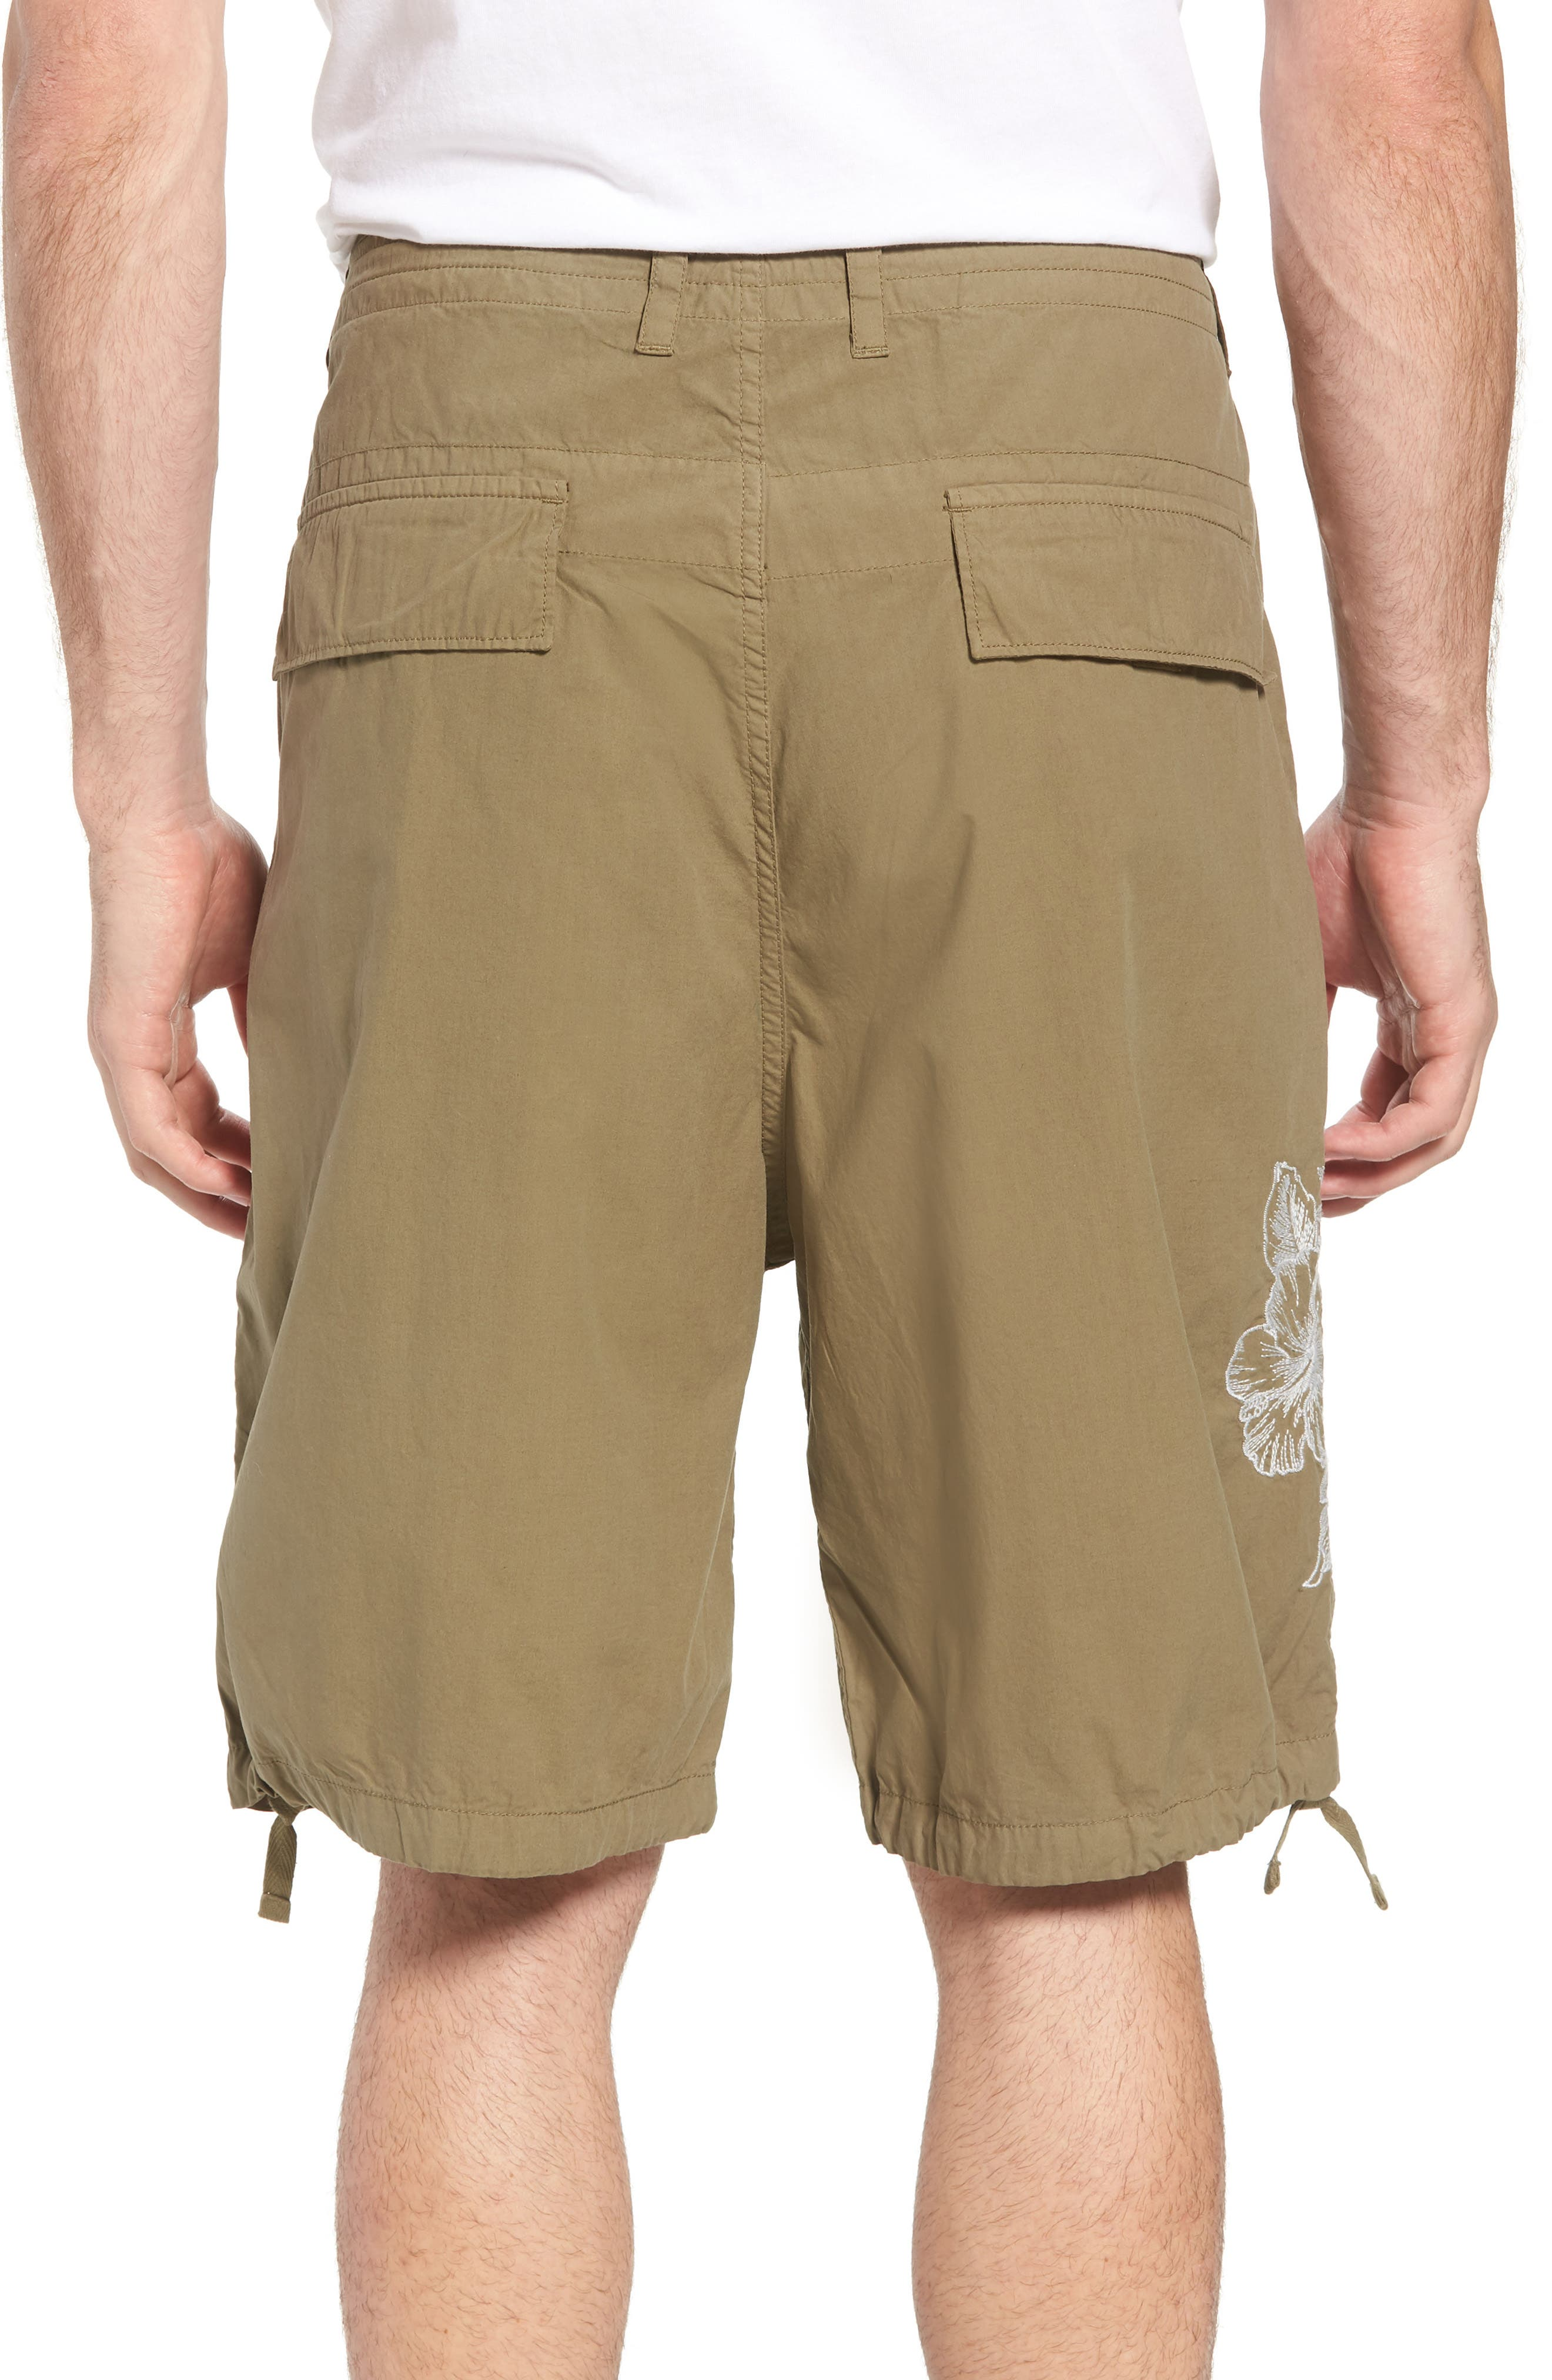 Embroidered Poplin Shorts,                             Alternate thumbnail 2, color,                             301